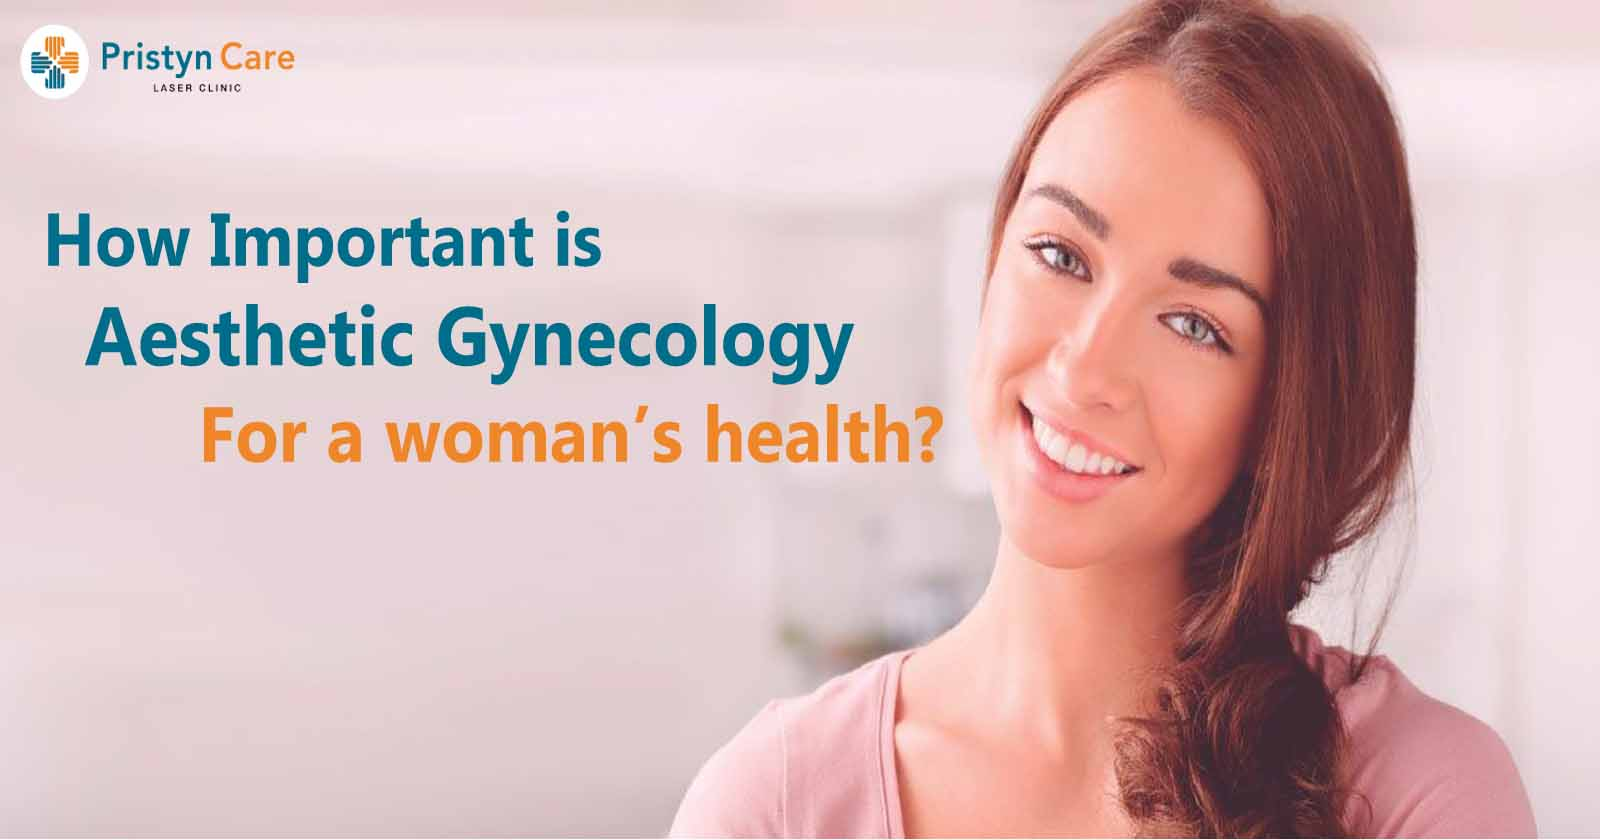 How important is Aesthetic Gynecology for a woman's health?